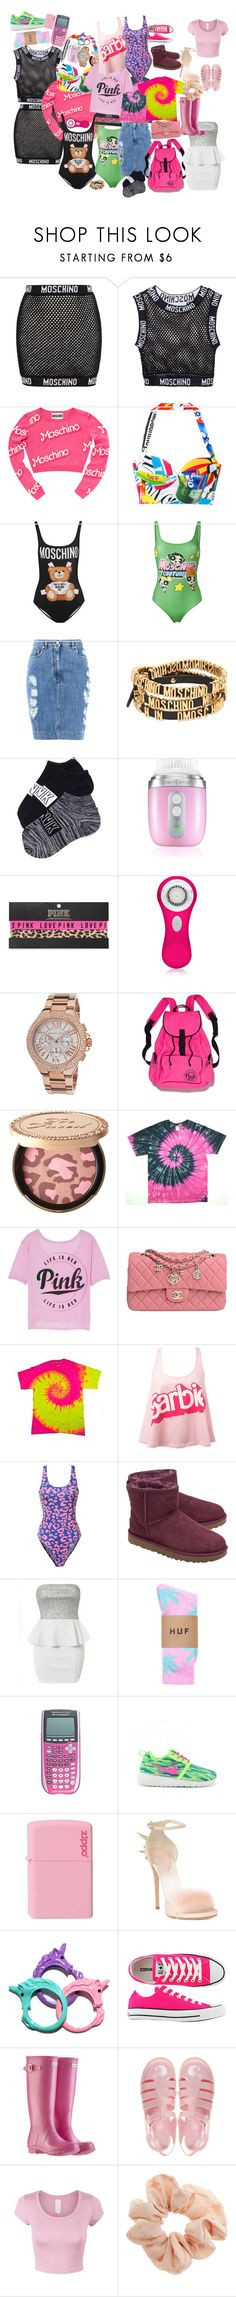 """""""Big haul"""" by selinalindroth ❤ liked on Polyvore featuring Moschino, Clarisonic, Victoria's Secret PINK, Michael Kors, Victoria's Secret, Too Faced Cosmetics, Chanel, Miss Selfridge, Glamorous and UGG"""